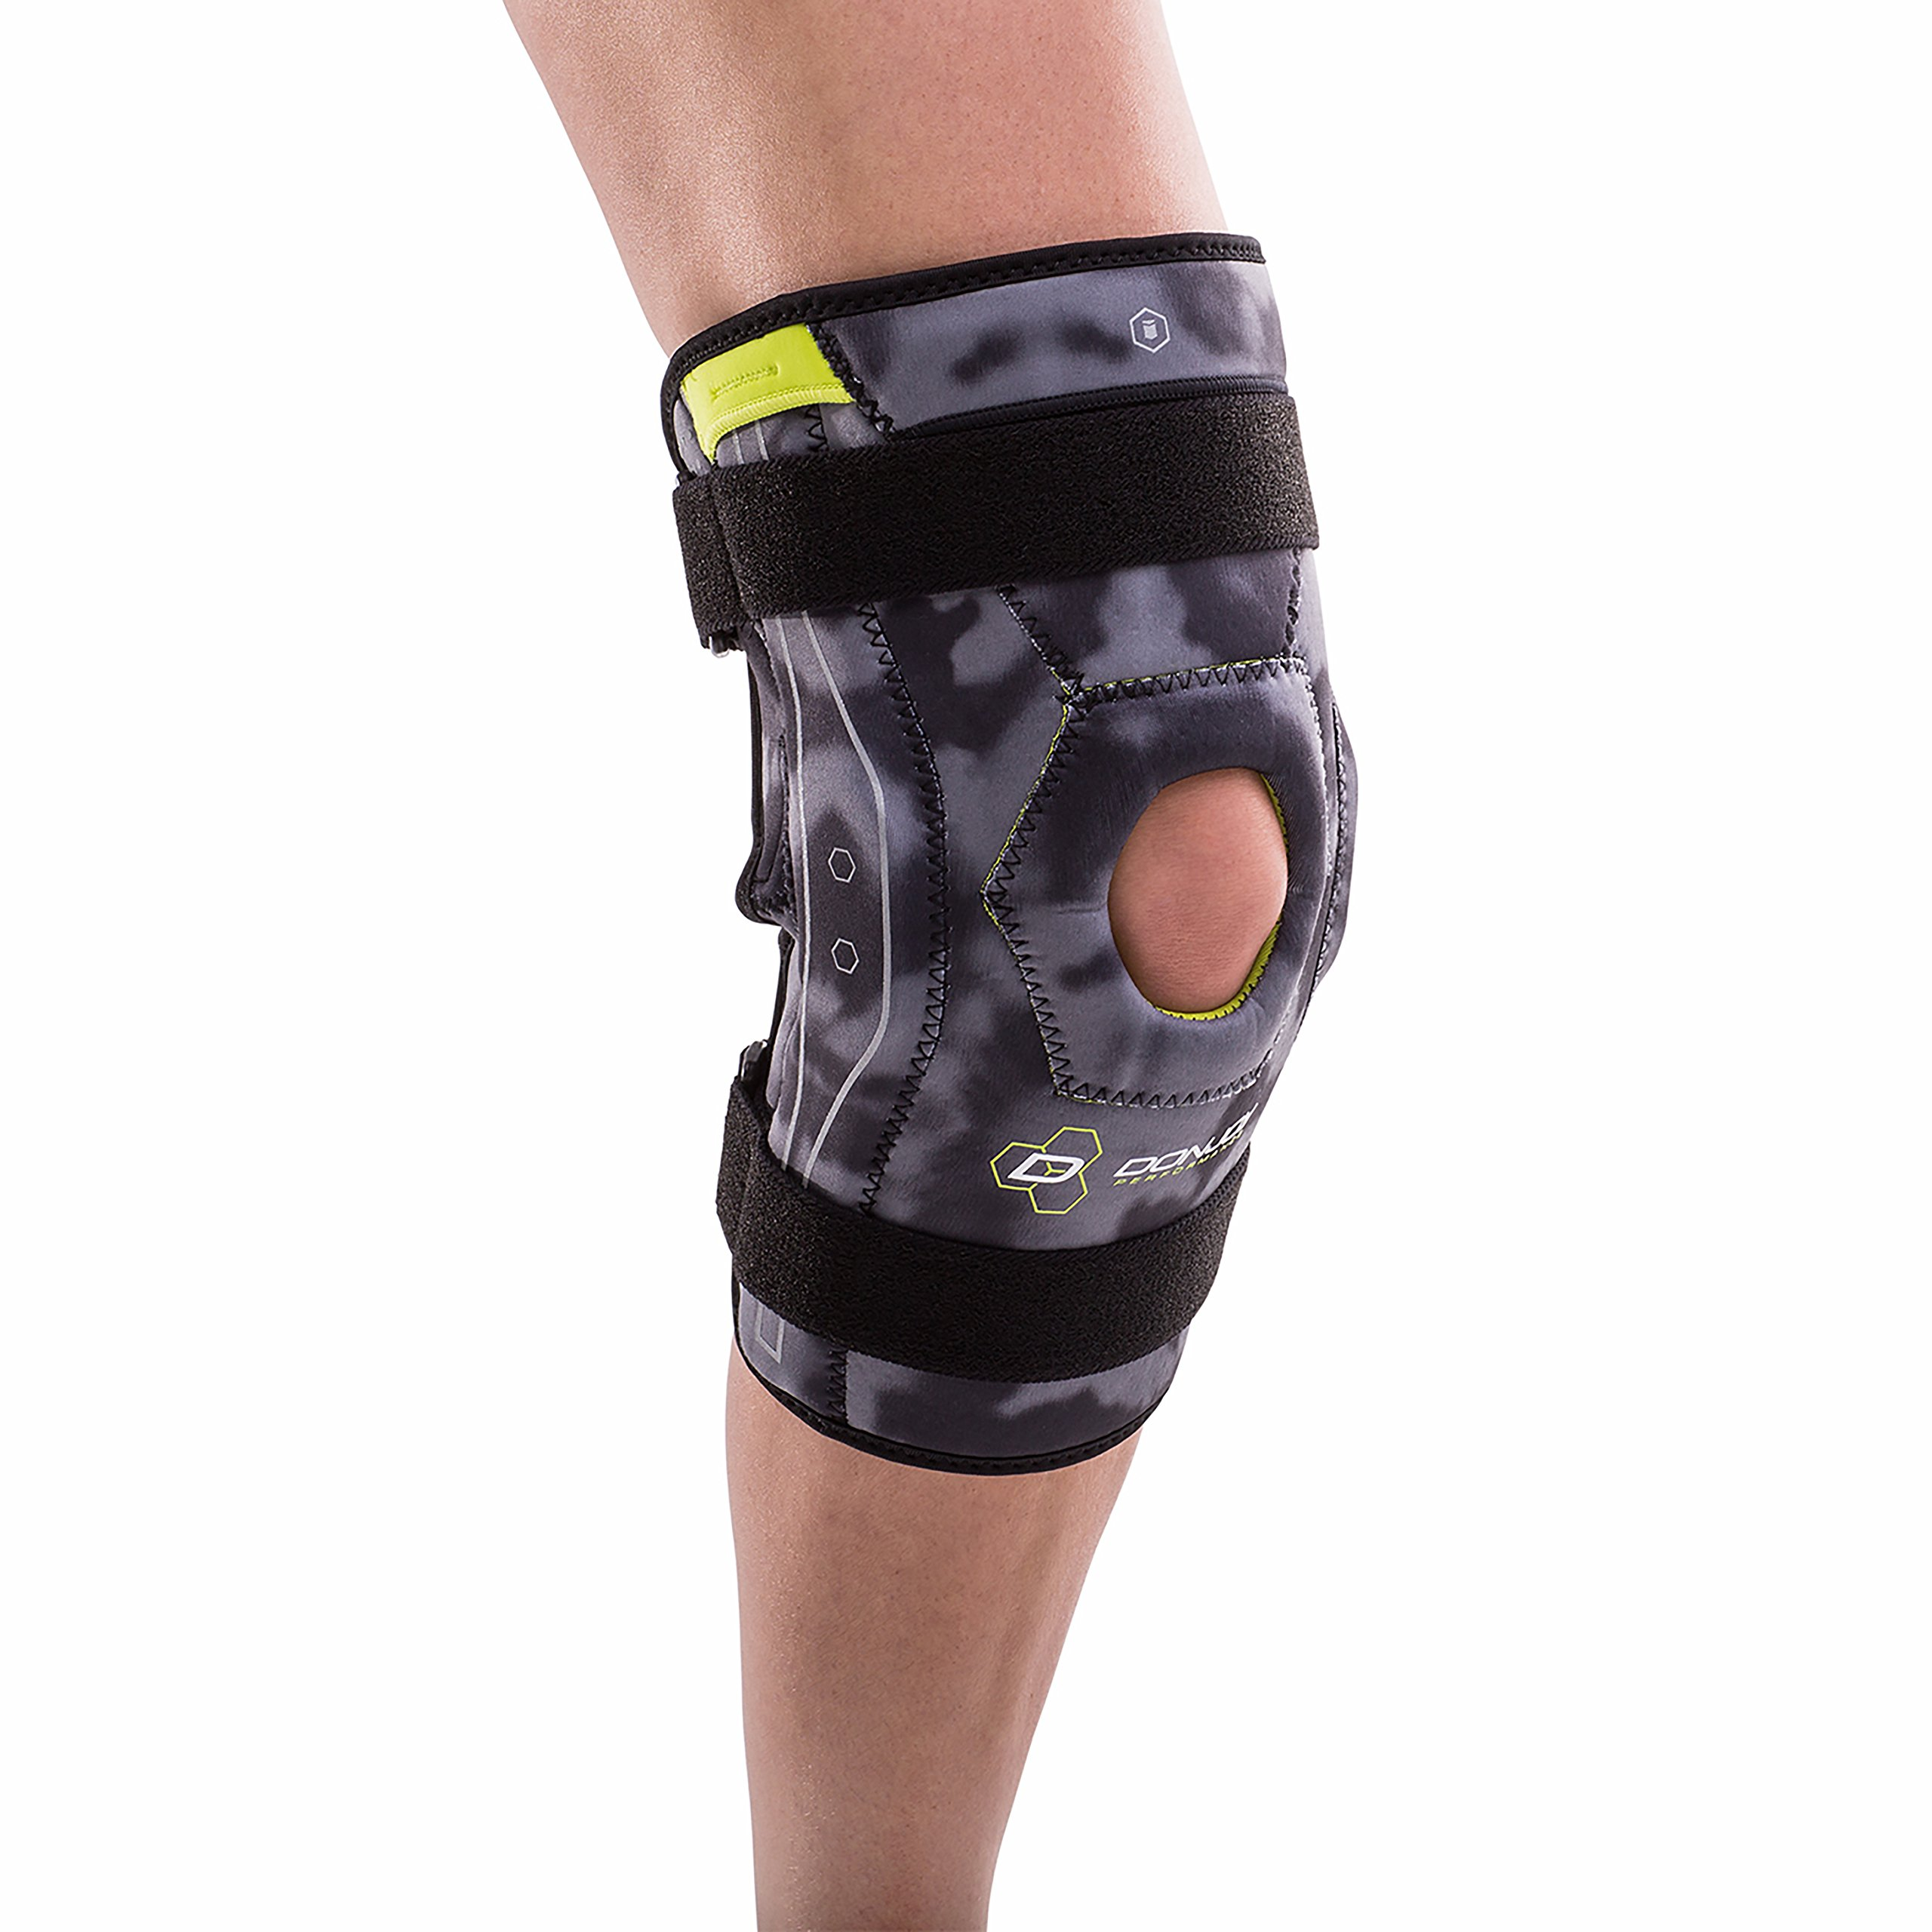 DonJoy Performance Bionic Knee Support Brace: Camo, Large